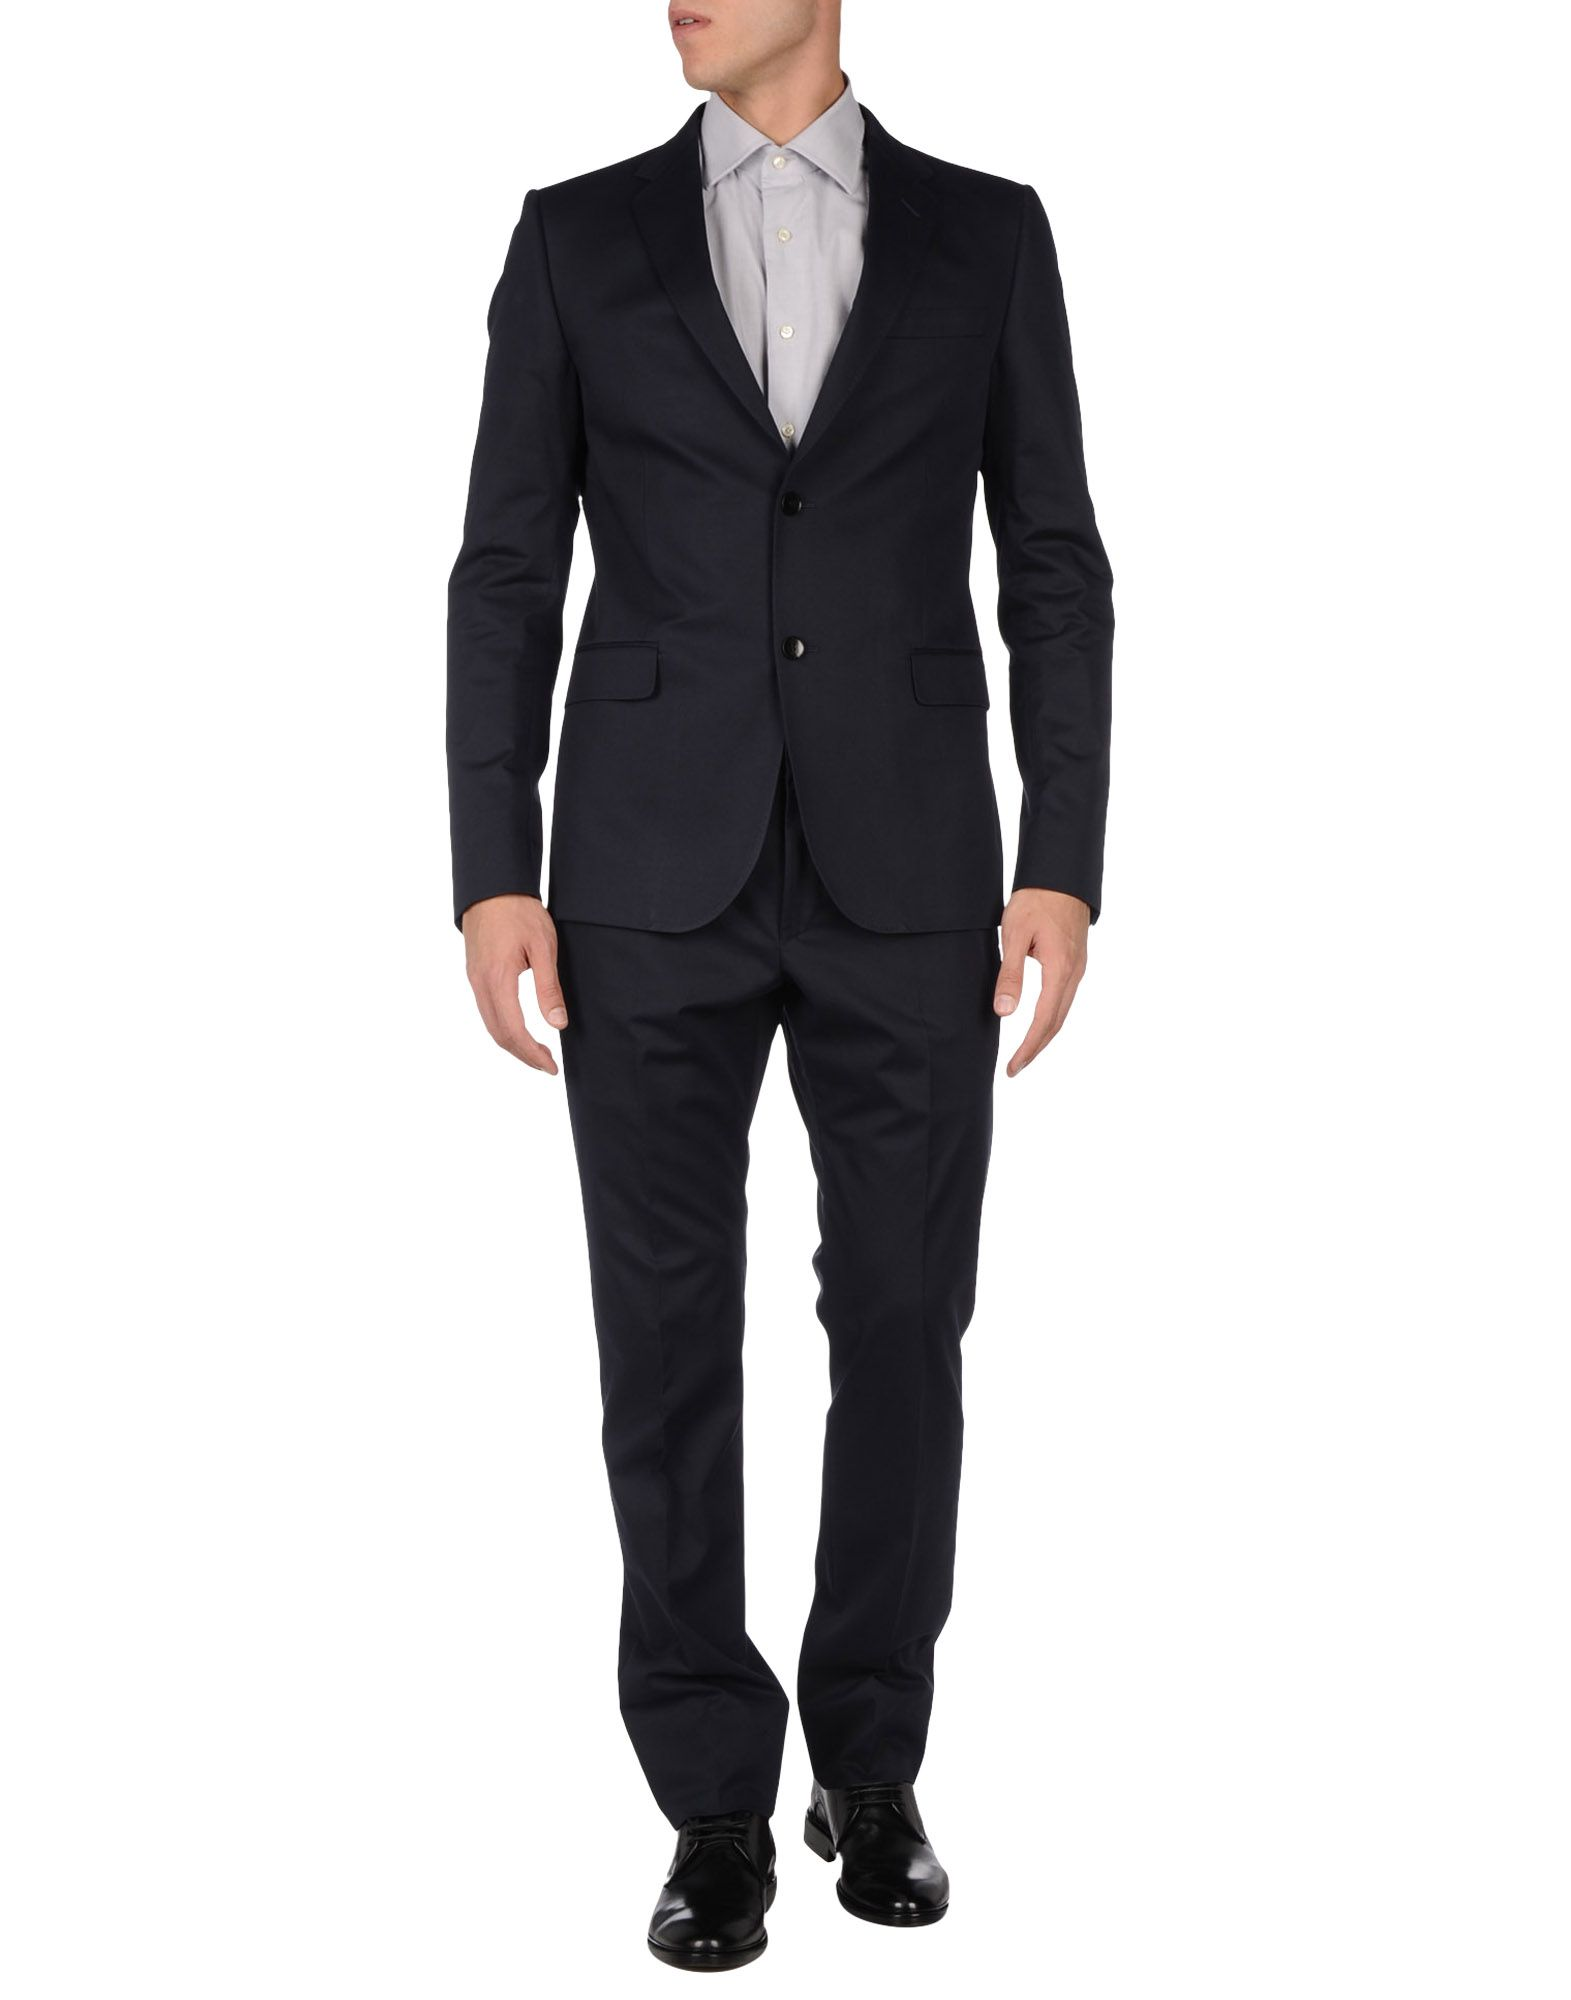 Gucci suit in blue for men lyst Designer clothing for men online sales